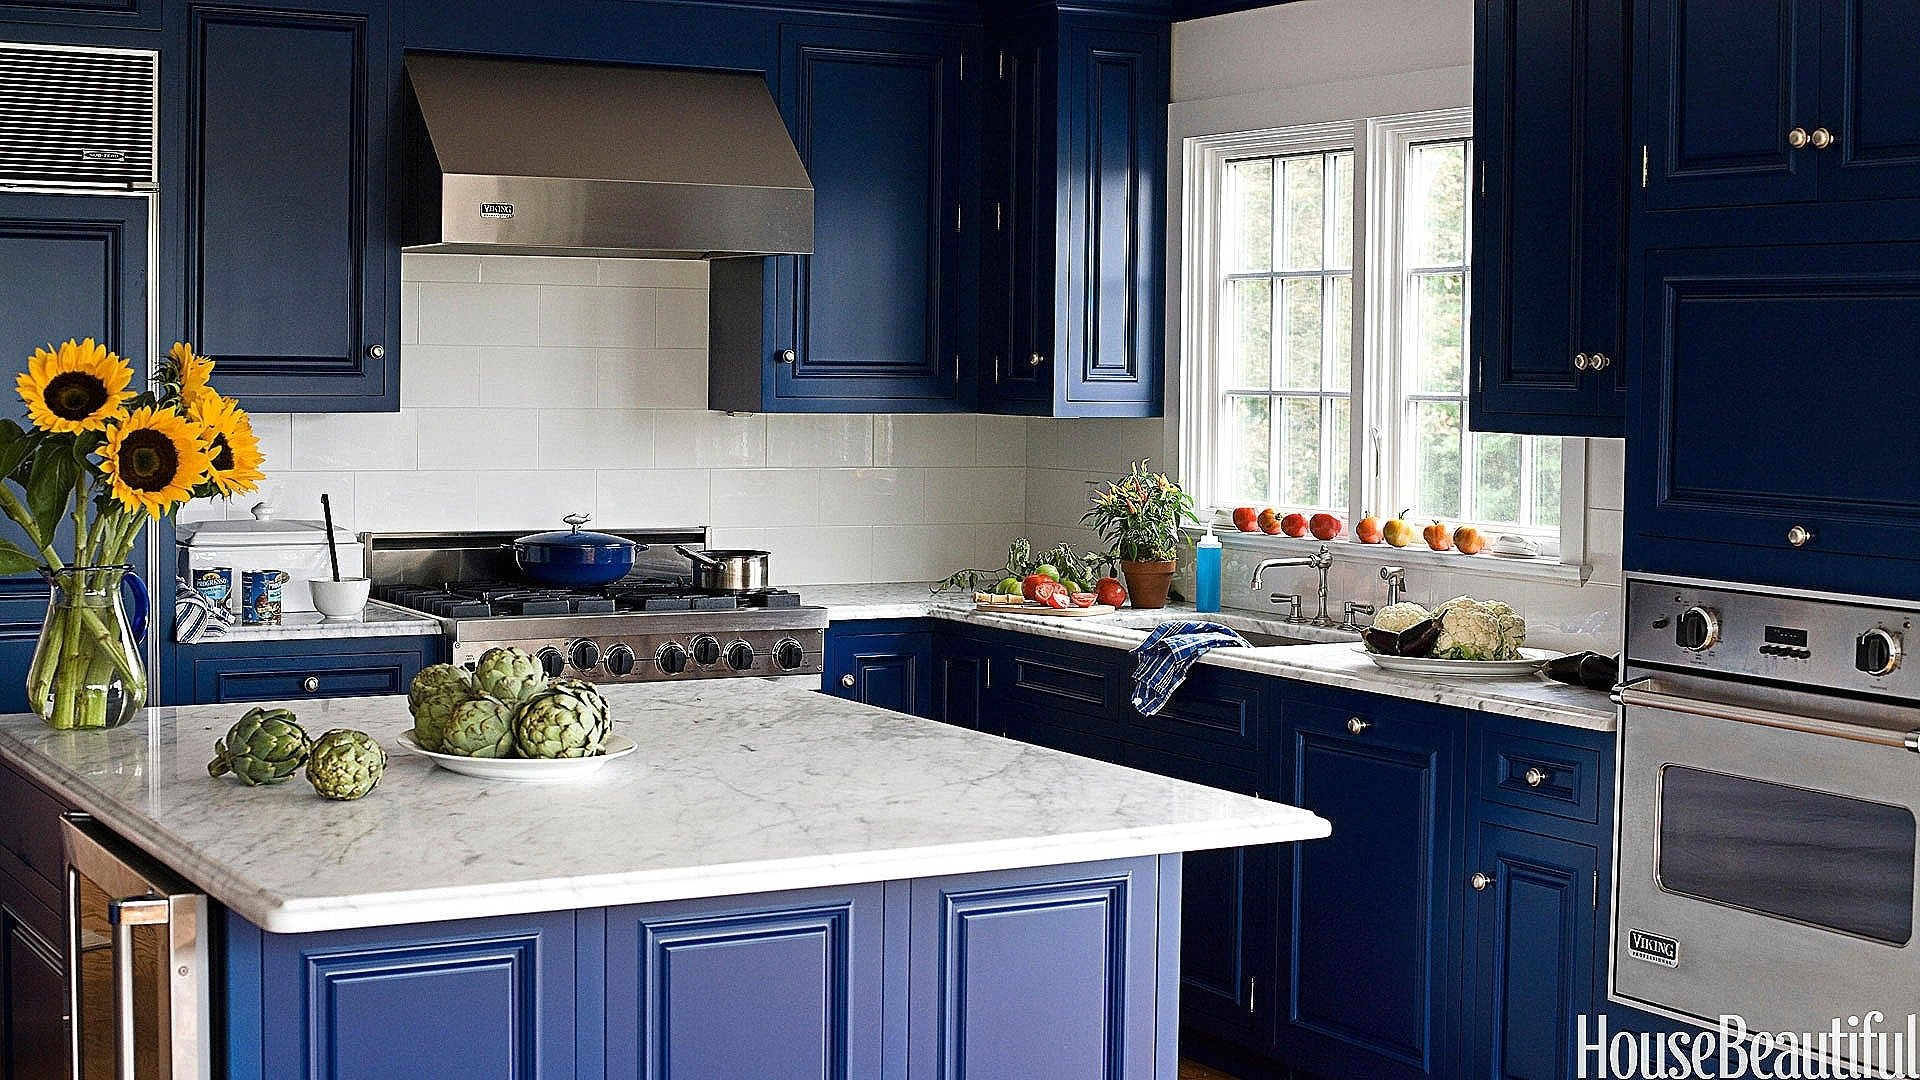 10 Lovely Painting Ideas For Kitchen Cabinets lovely color kitchen cabinets 1 photos 100topwetlandsites 2020